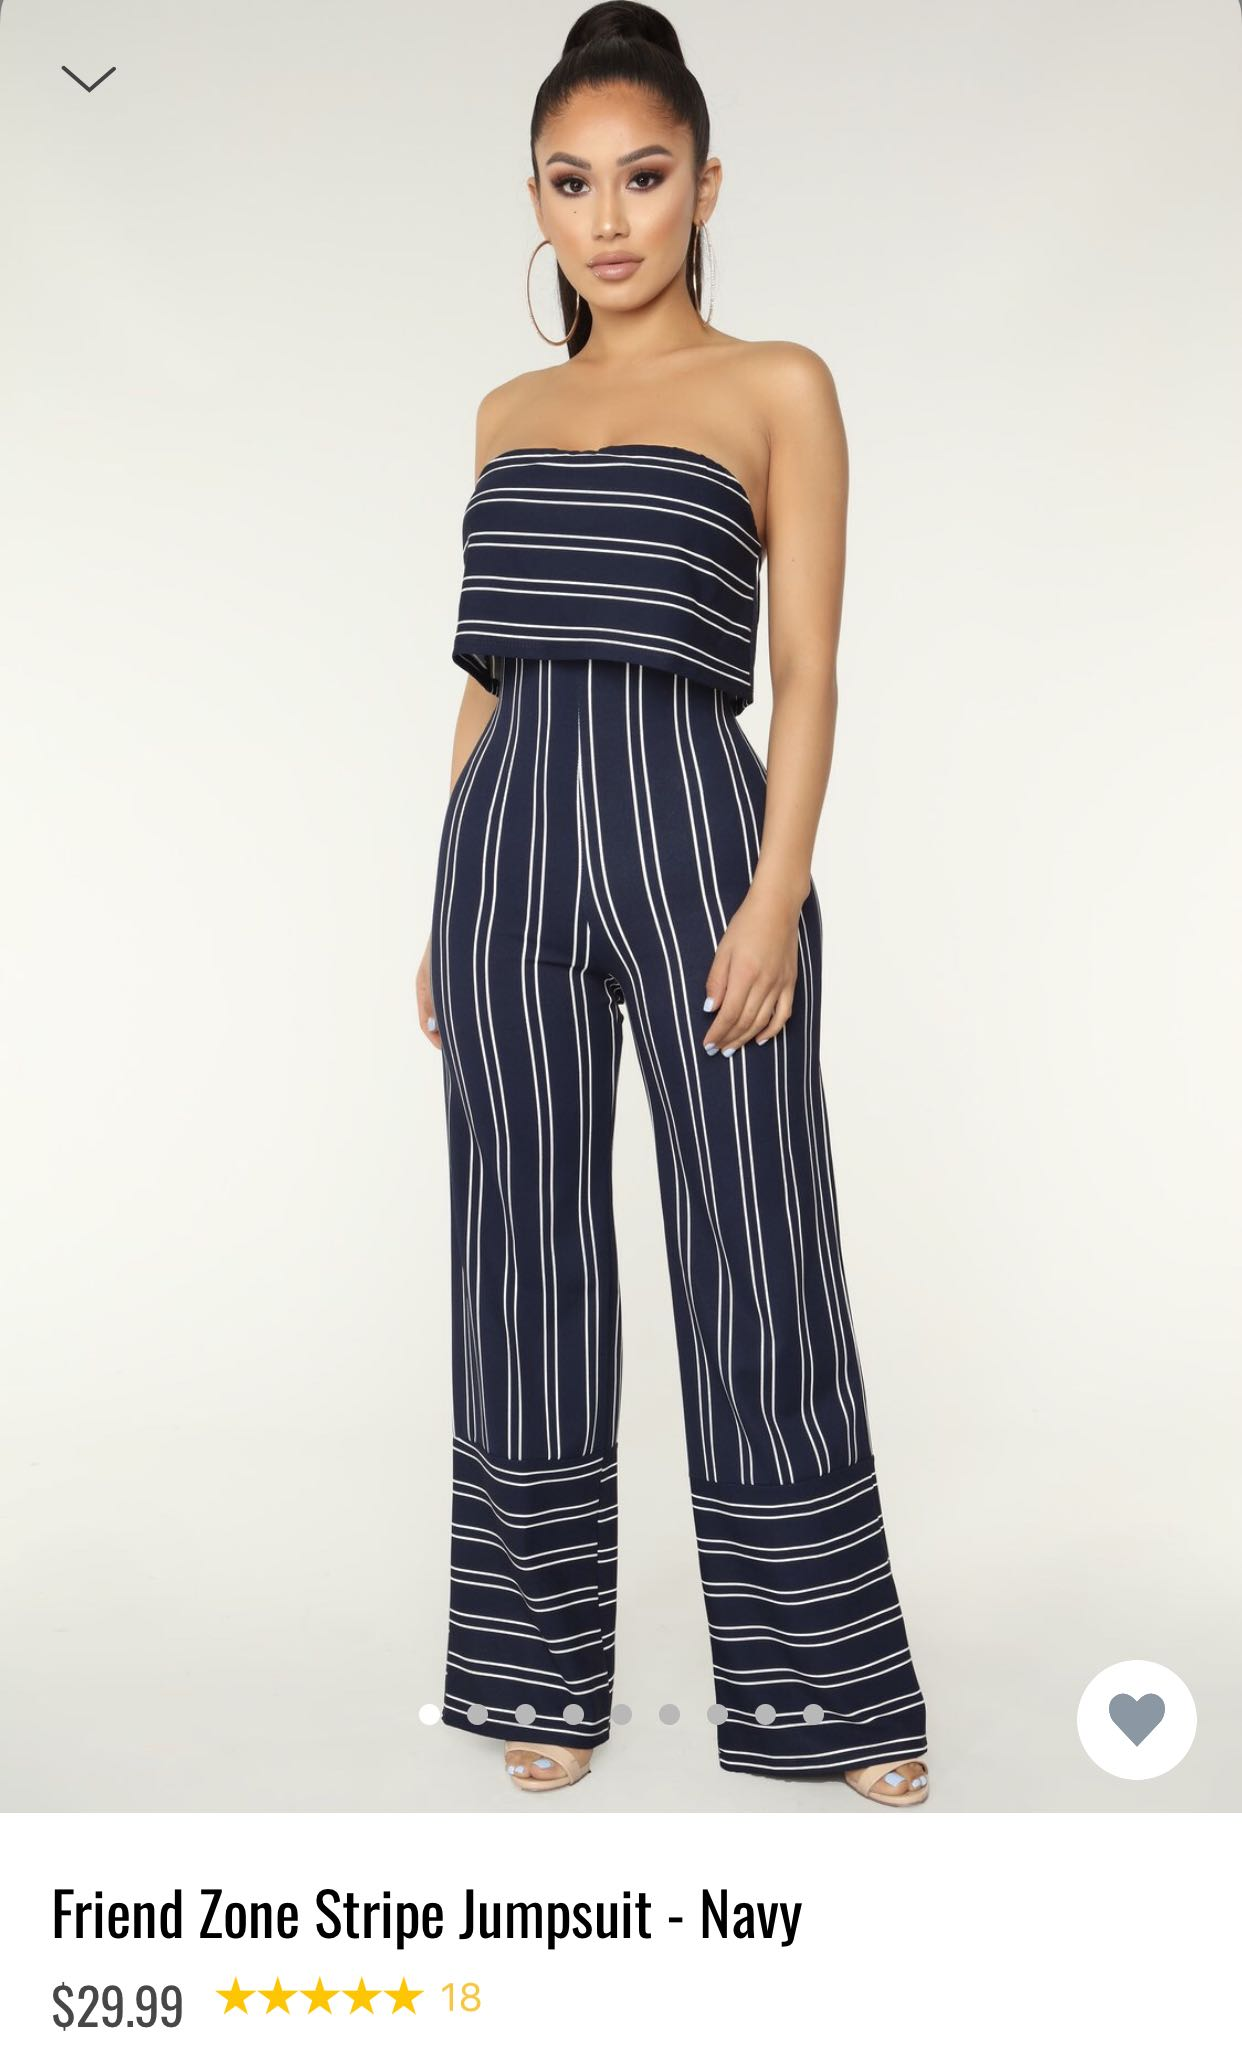 c15eee788e6 Fashionnova brand new jumpsuit in navy stripe